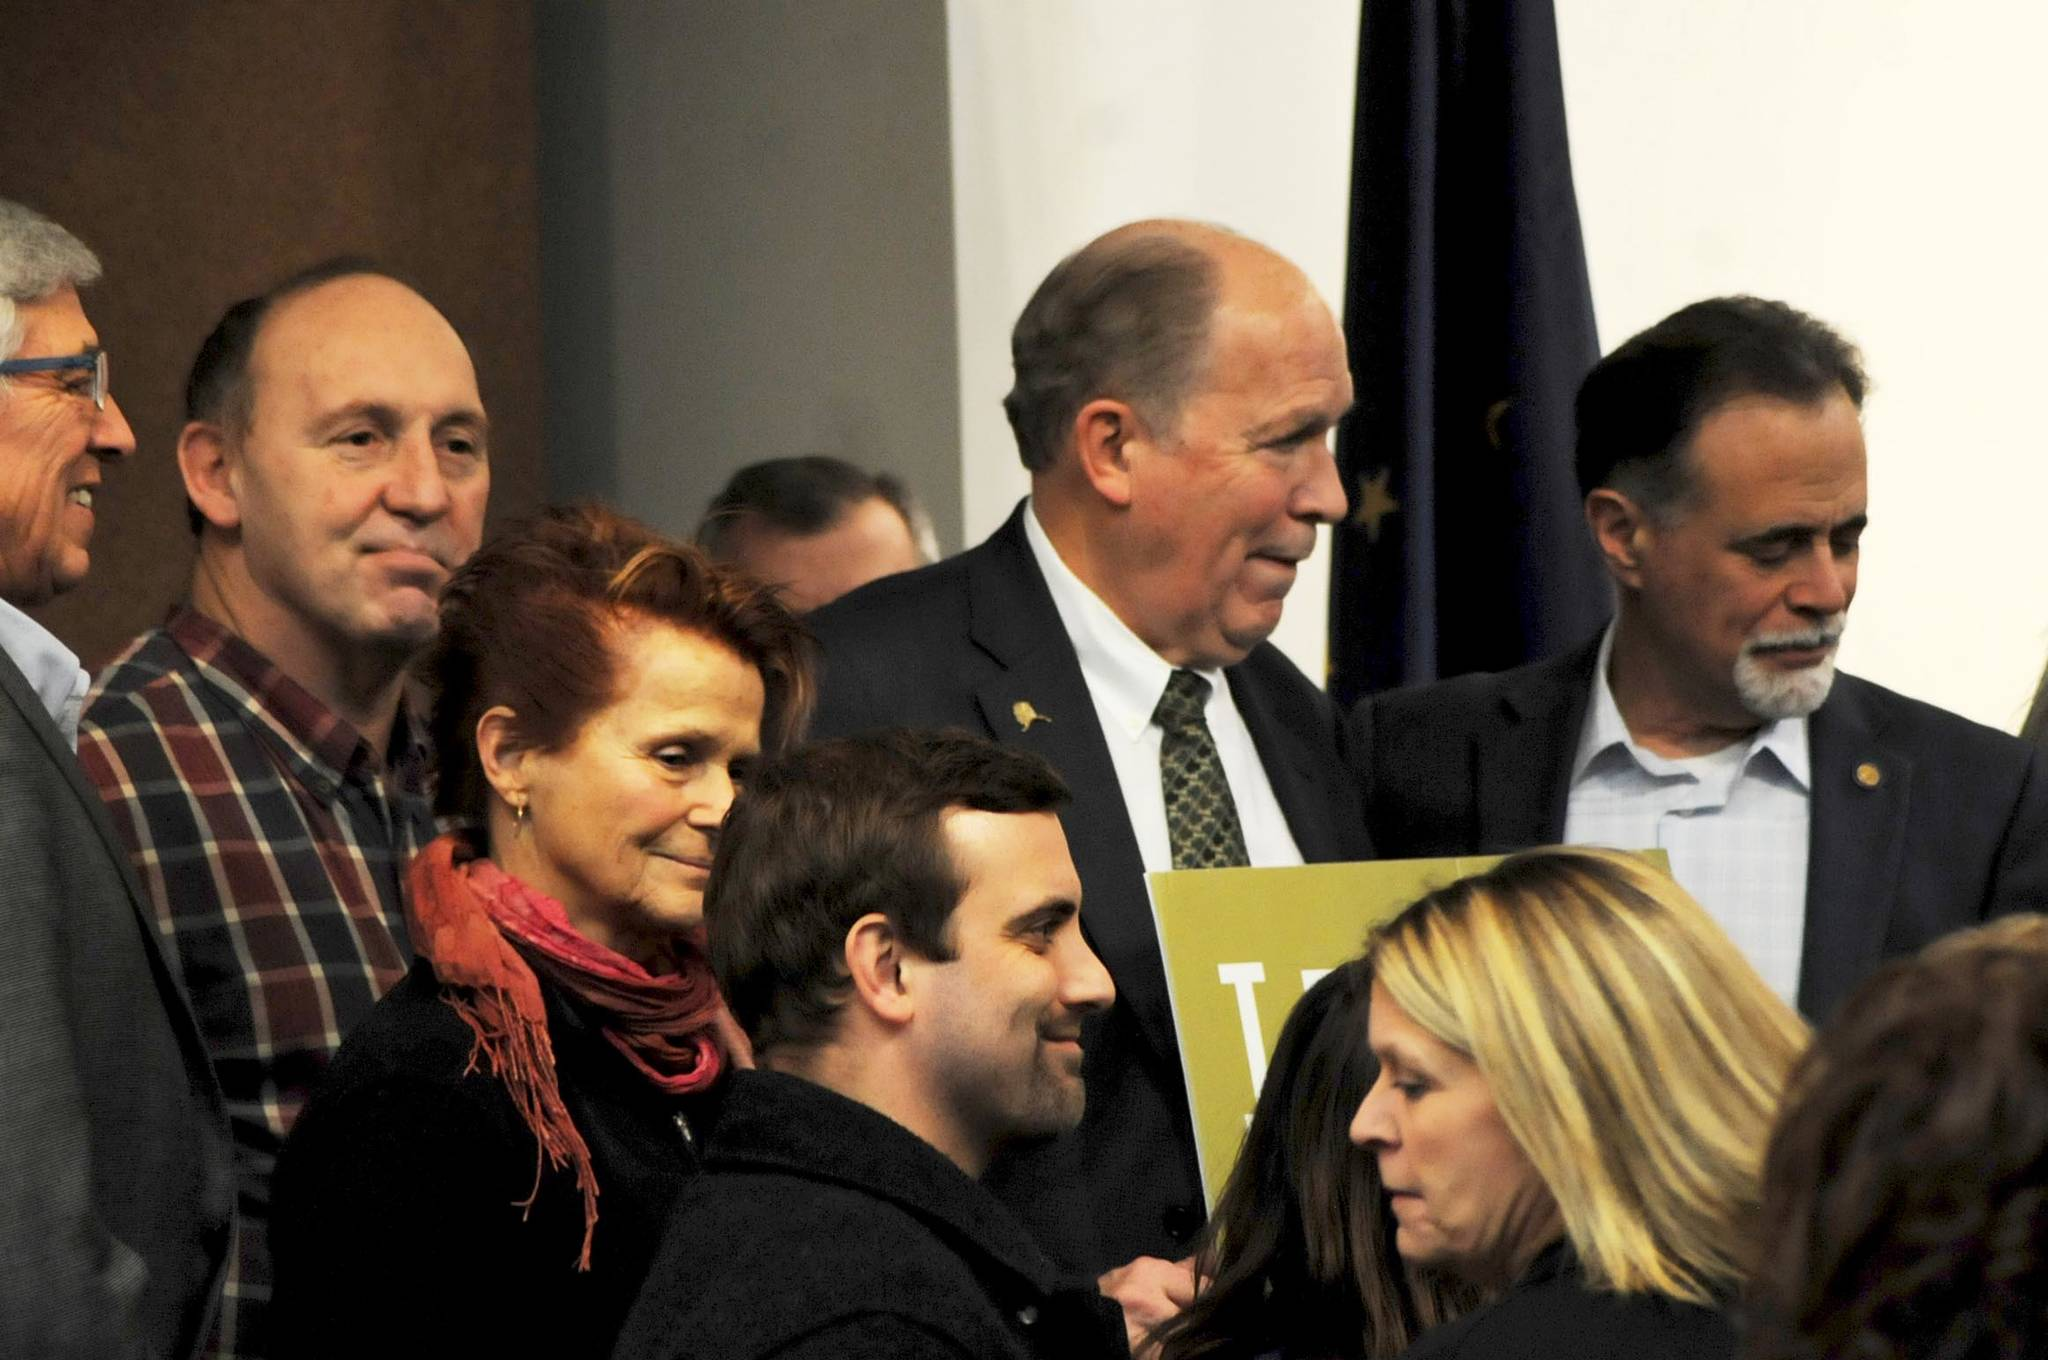 Gov. Bill Walker (center), Sen. Peter Micciche, R-Soldotna, (right) and Rep. Gary Knopp, R-Kenai, (left) stand among a group of citizens and government officials after the conclusion of a joint luncheon of the Kenai and Soldotna chambers of commerce Tuesday, Dec. 19, 2017 in Kenai, Alaska. Walker visited Kenai to address the chambers of commerce with updates on the Alaska LNG Project. (Photo by Elizabeth Earl/Peninsula Clarion)